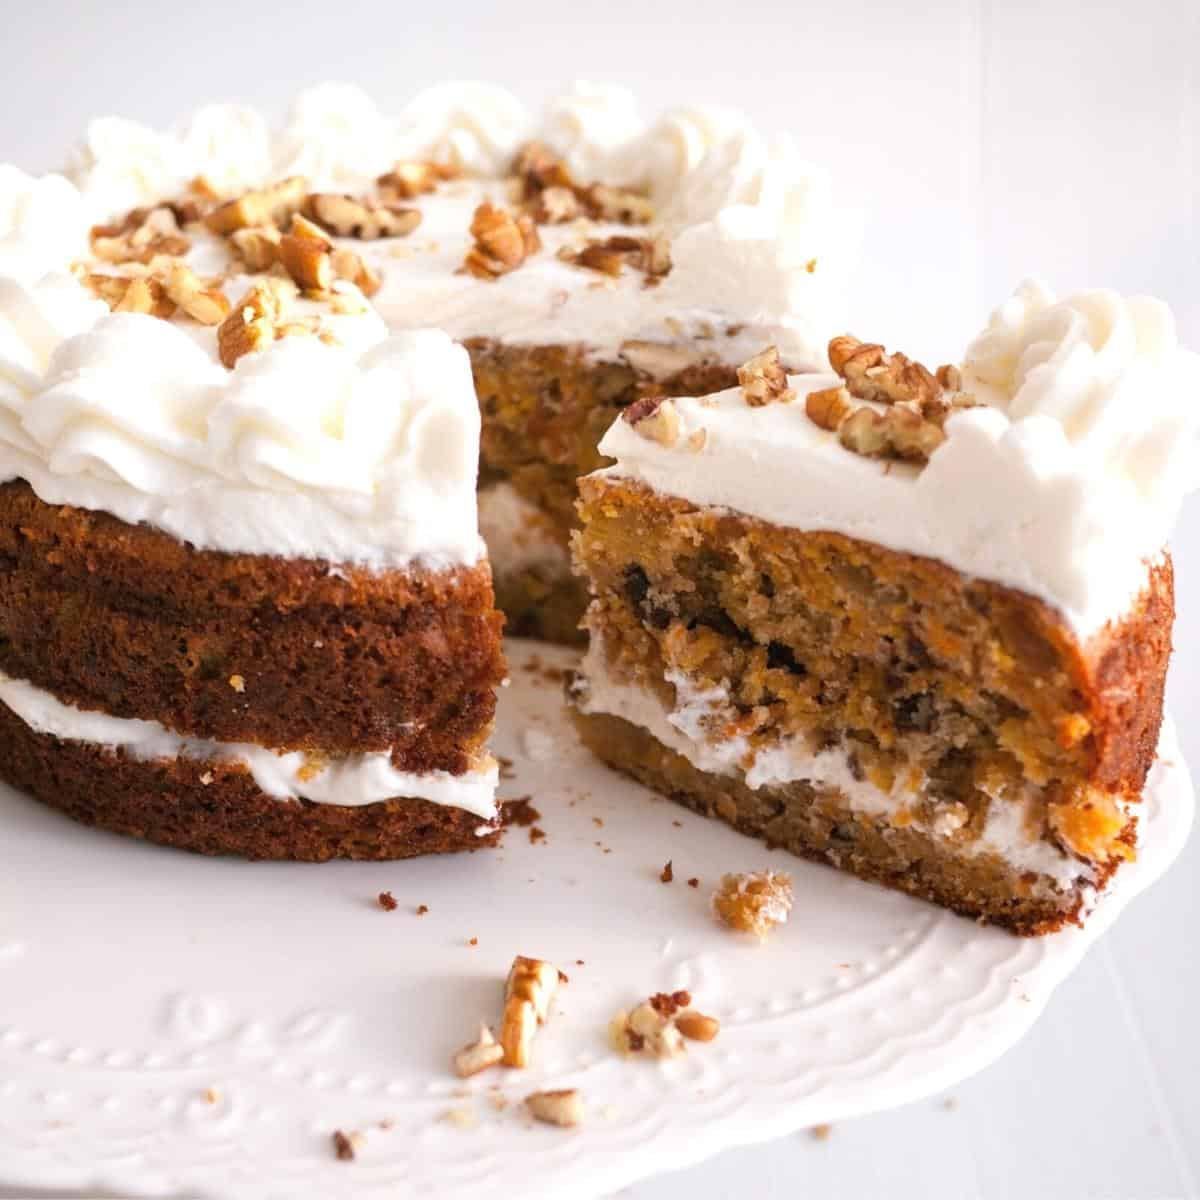 A carrot cake decorated with cream cheese